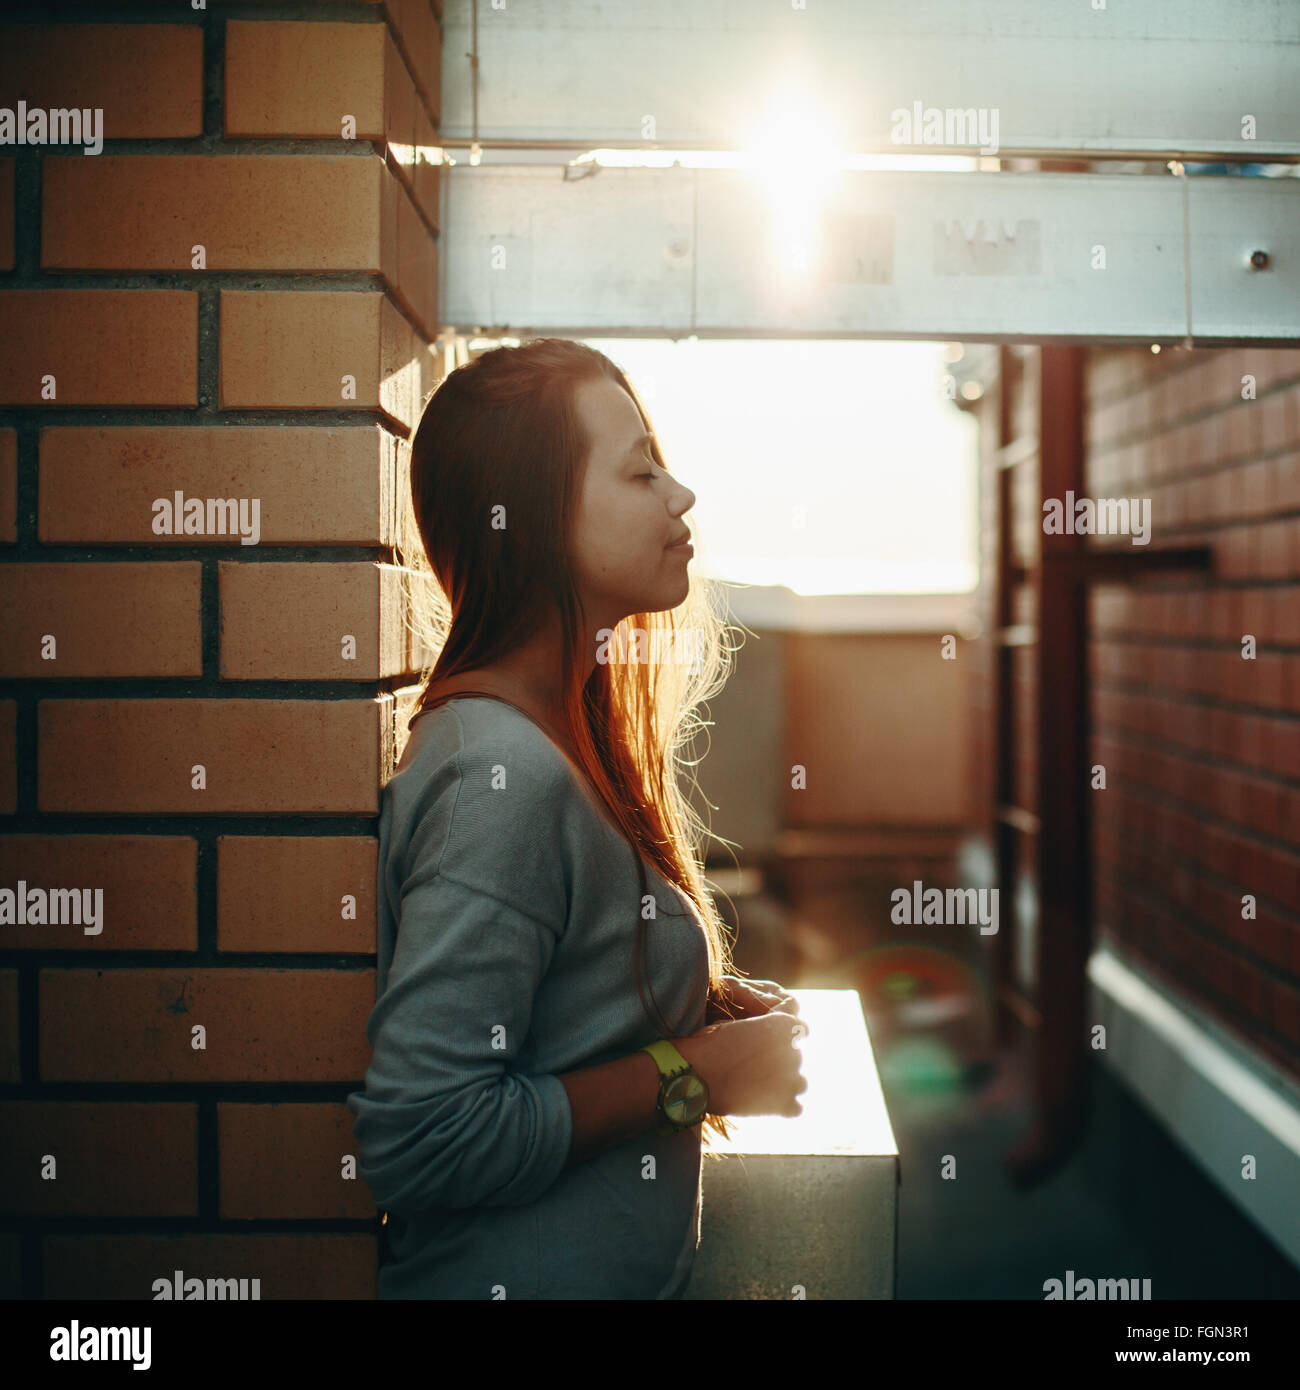 Young Woman Standing on a Street with Closed Eyes in Sunset Light. Selective Focus, Lens Flare. - Stock Image